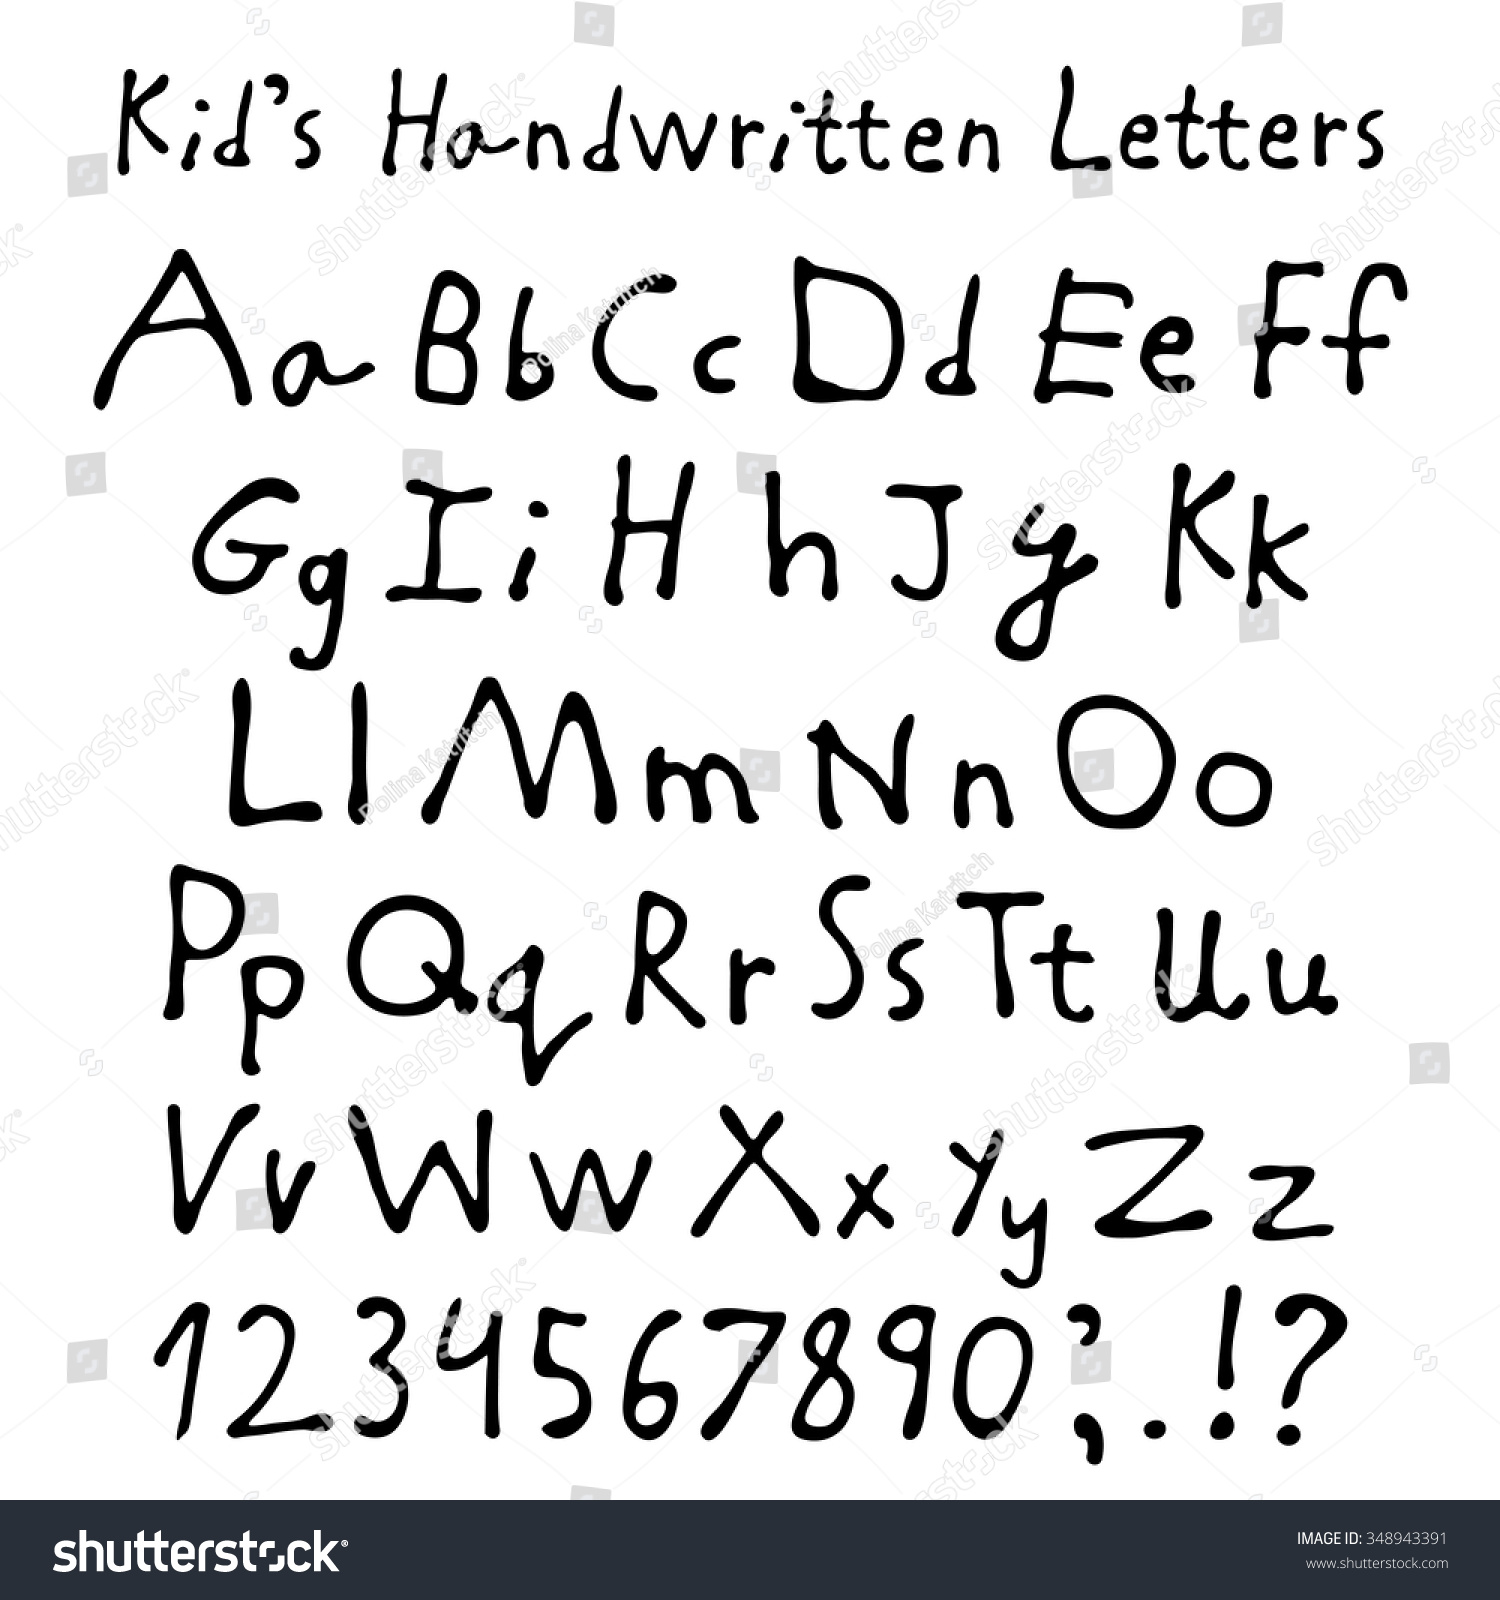 Worksheets Script Alphabet For Kids kids handwritten letters full alphabet and numbers children script font preview save to a lightbox